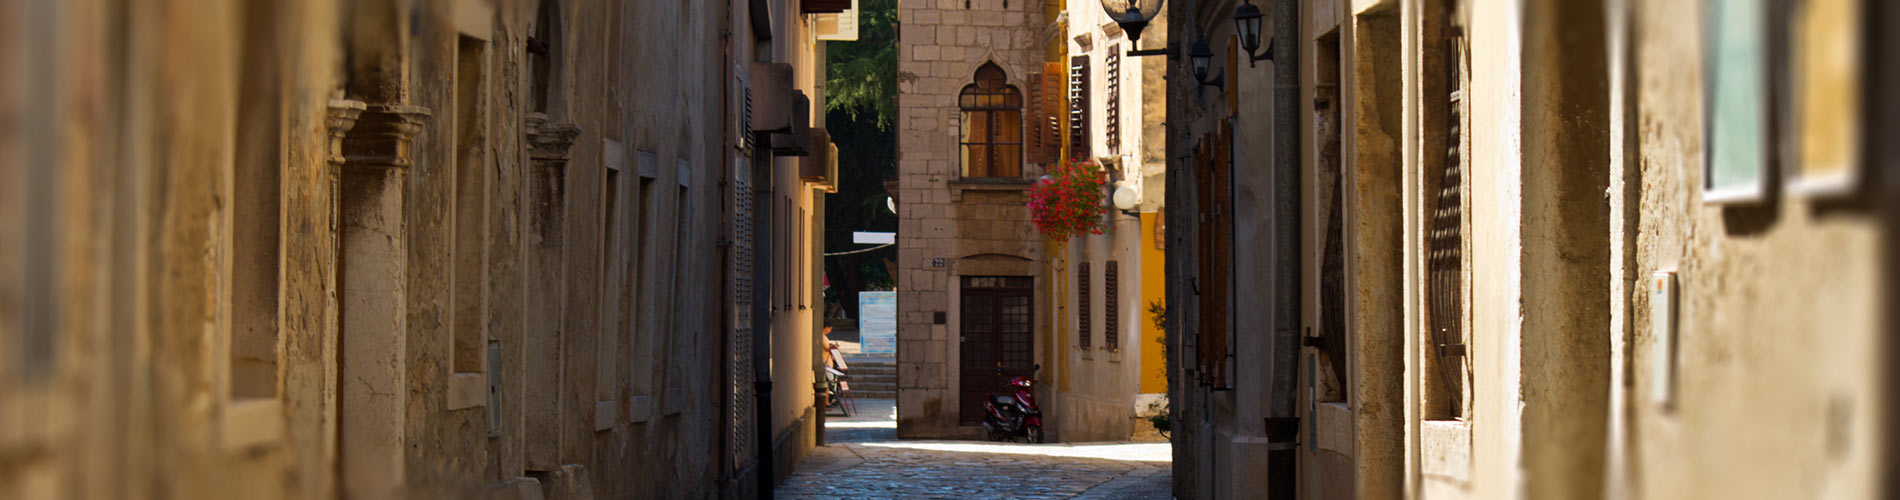 Small street in the historical center of Porec.jpg